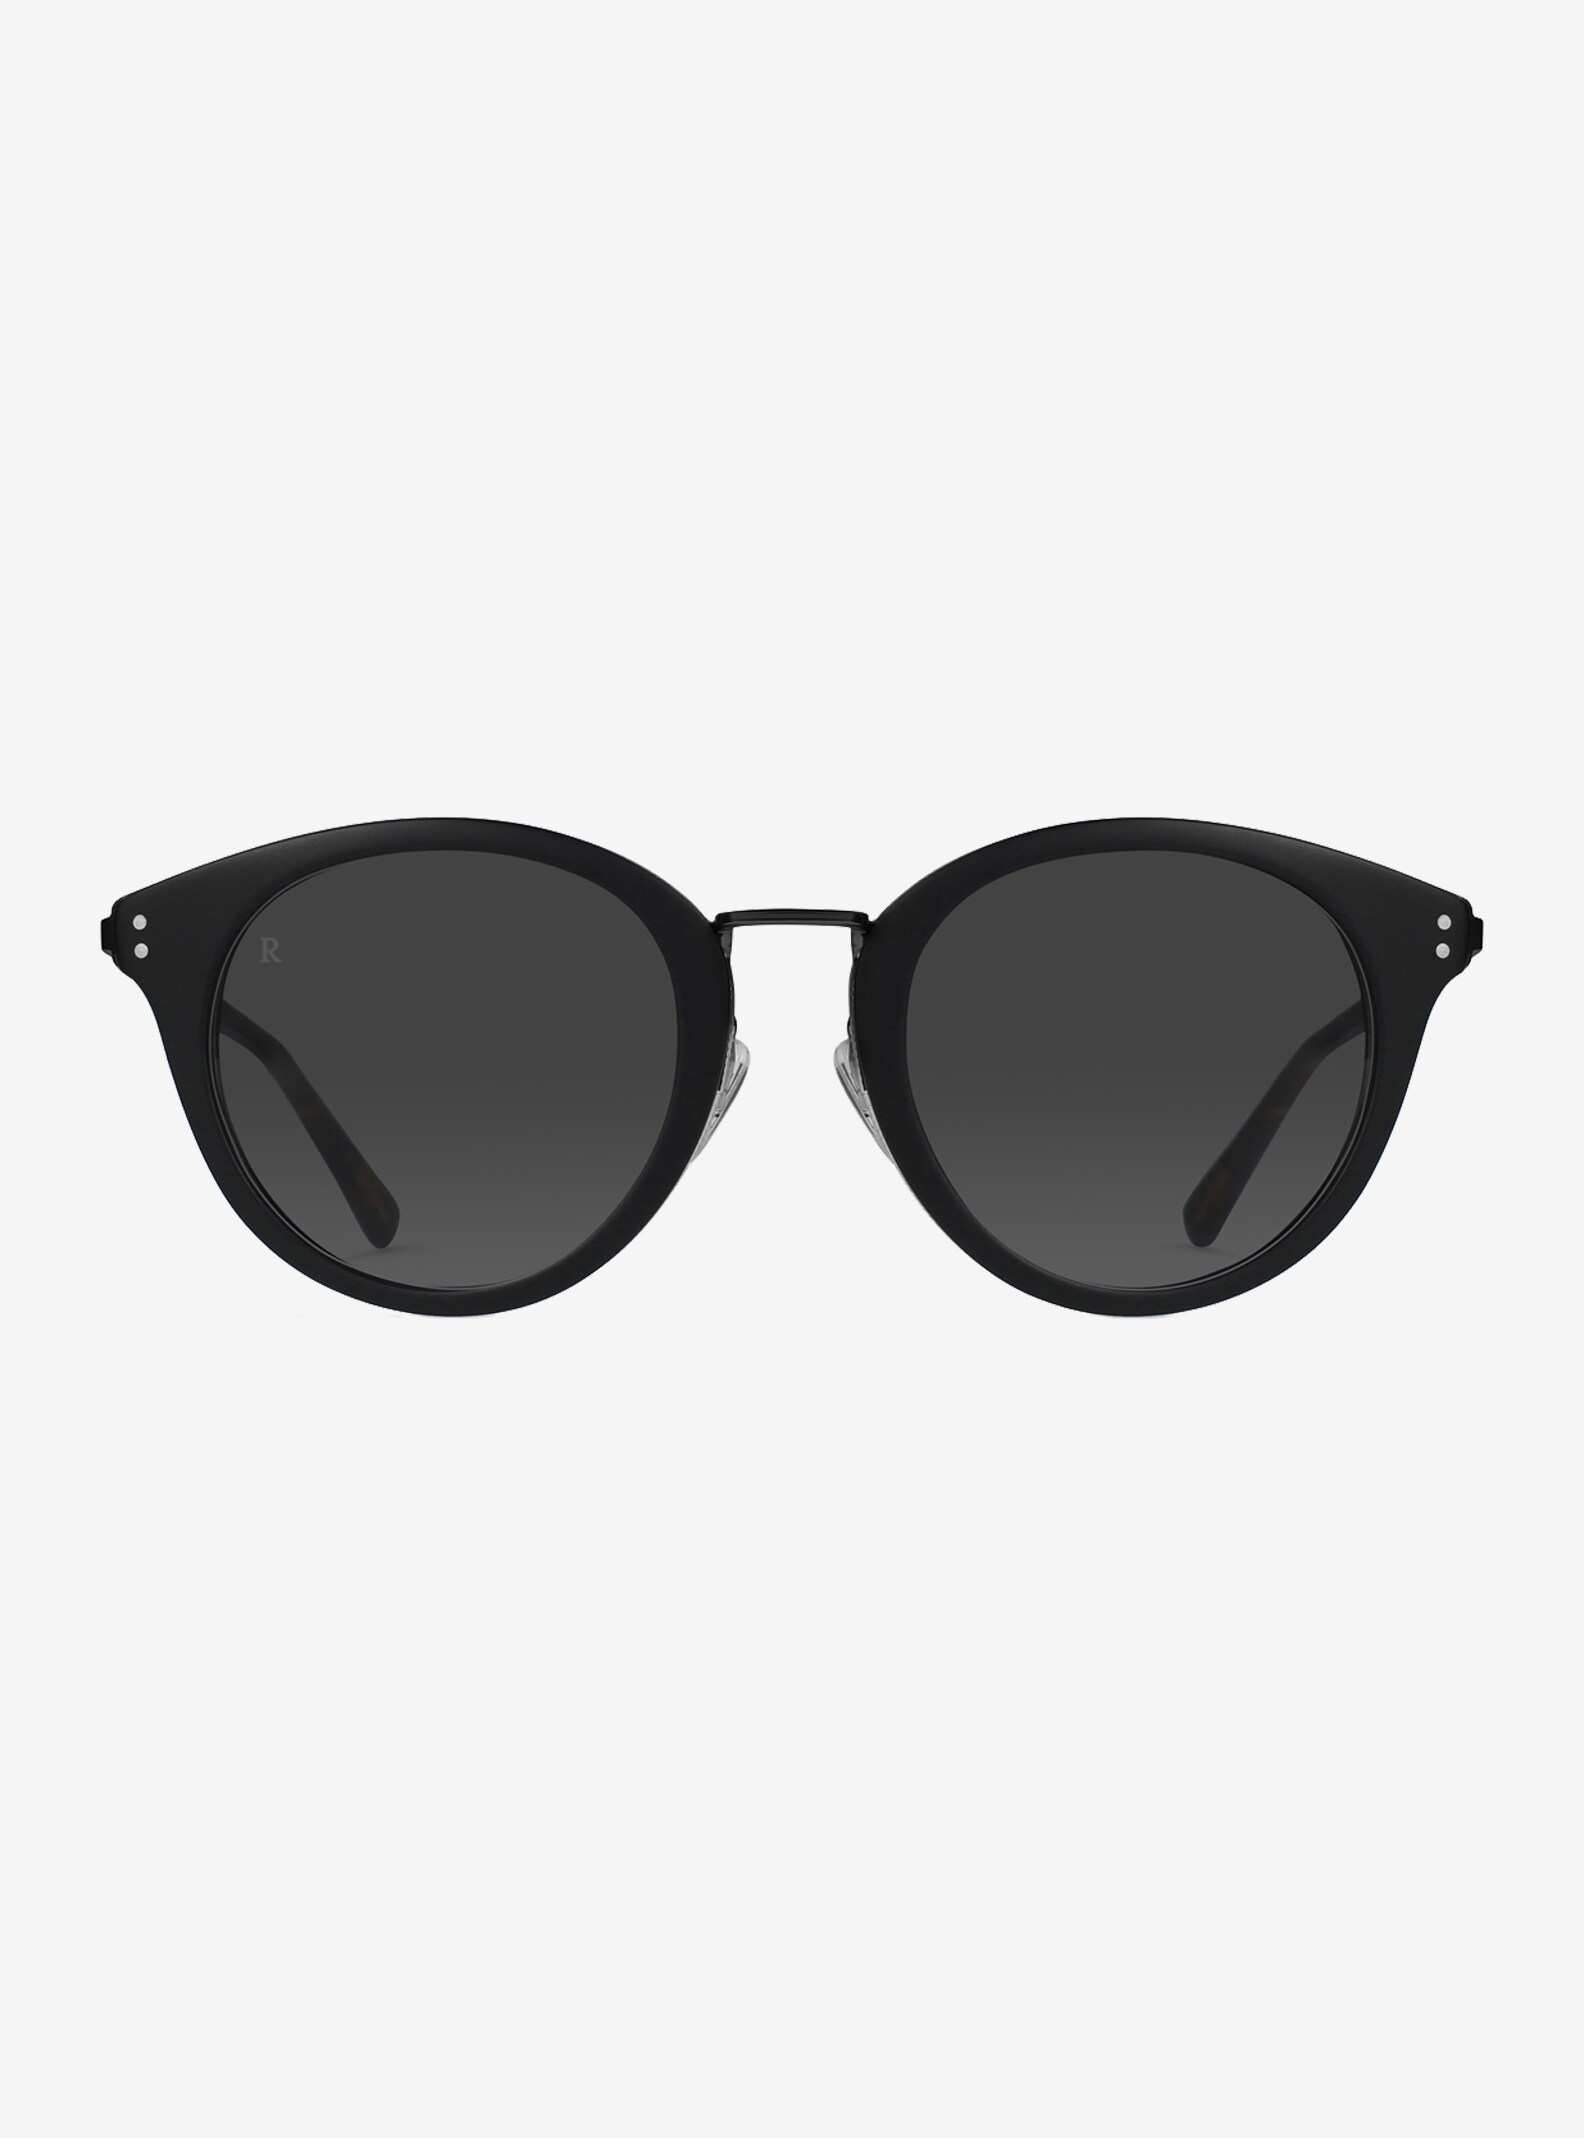 RAEN Potrero Sunglasses shown in Matte Black / Brindle